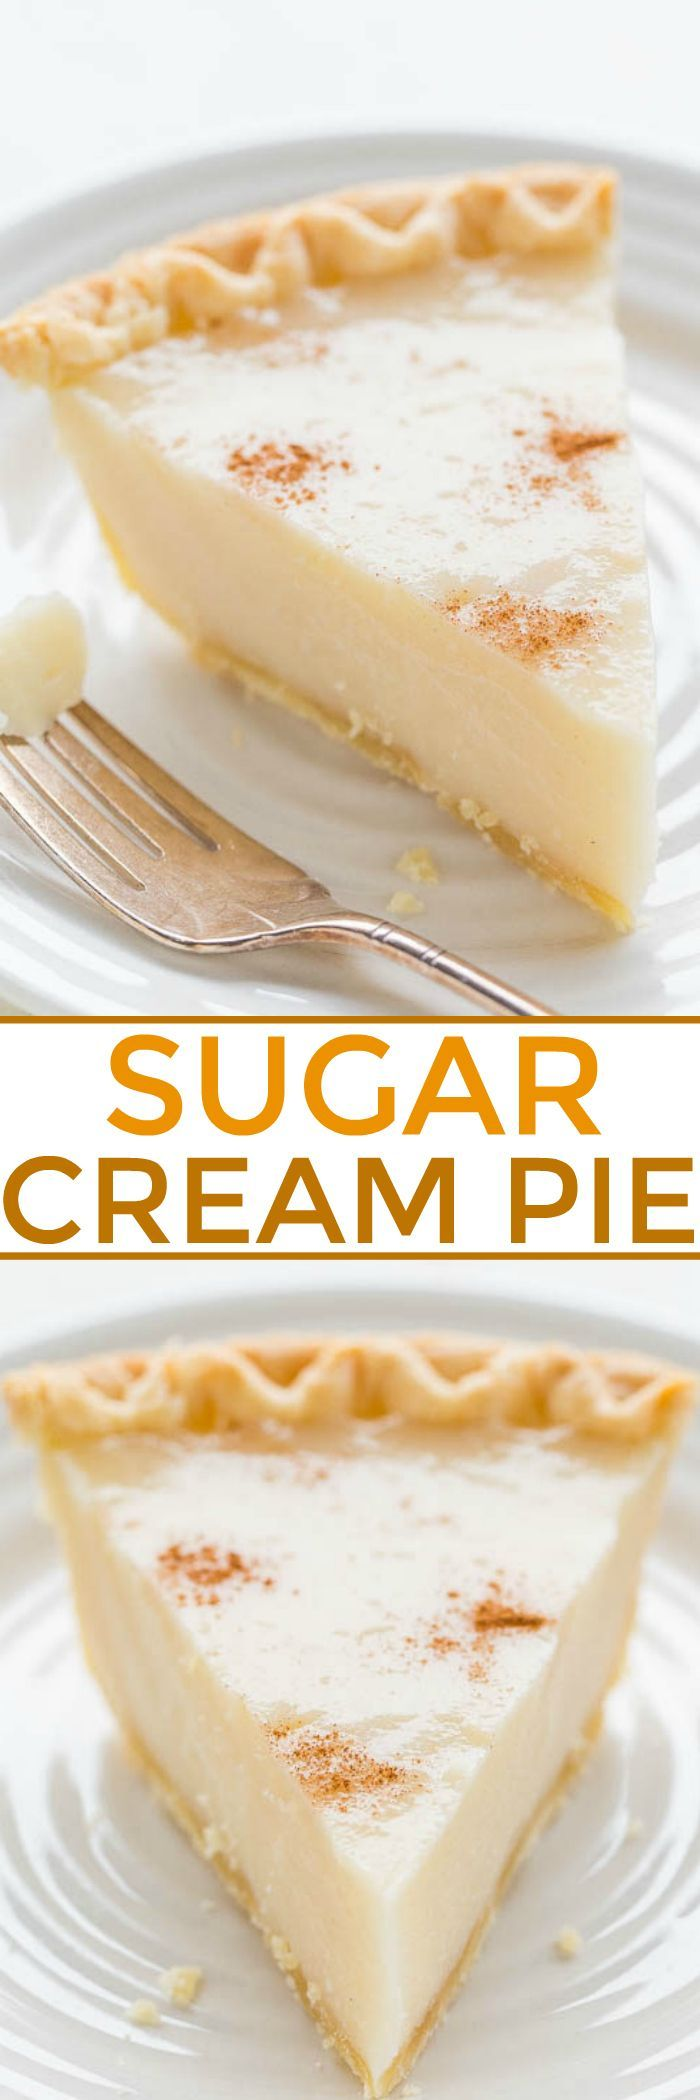 Sugar Cream Pie - An EASY, no mixer cream pie that's guaranteed to set up!! Sweet, rich, creamy, and tastes a lot like the infamous CRACK PIE crossed with CREME BRULEE but it's 1000x easier! Use frozen pie crust to save even more time!!